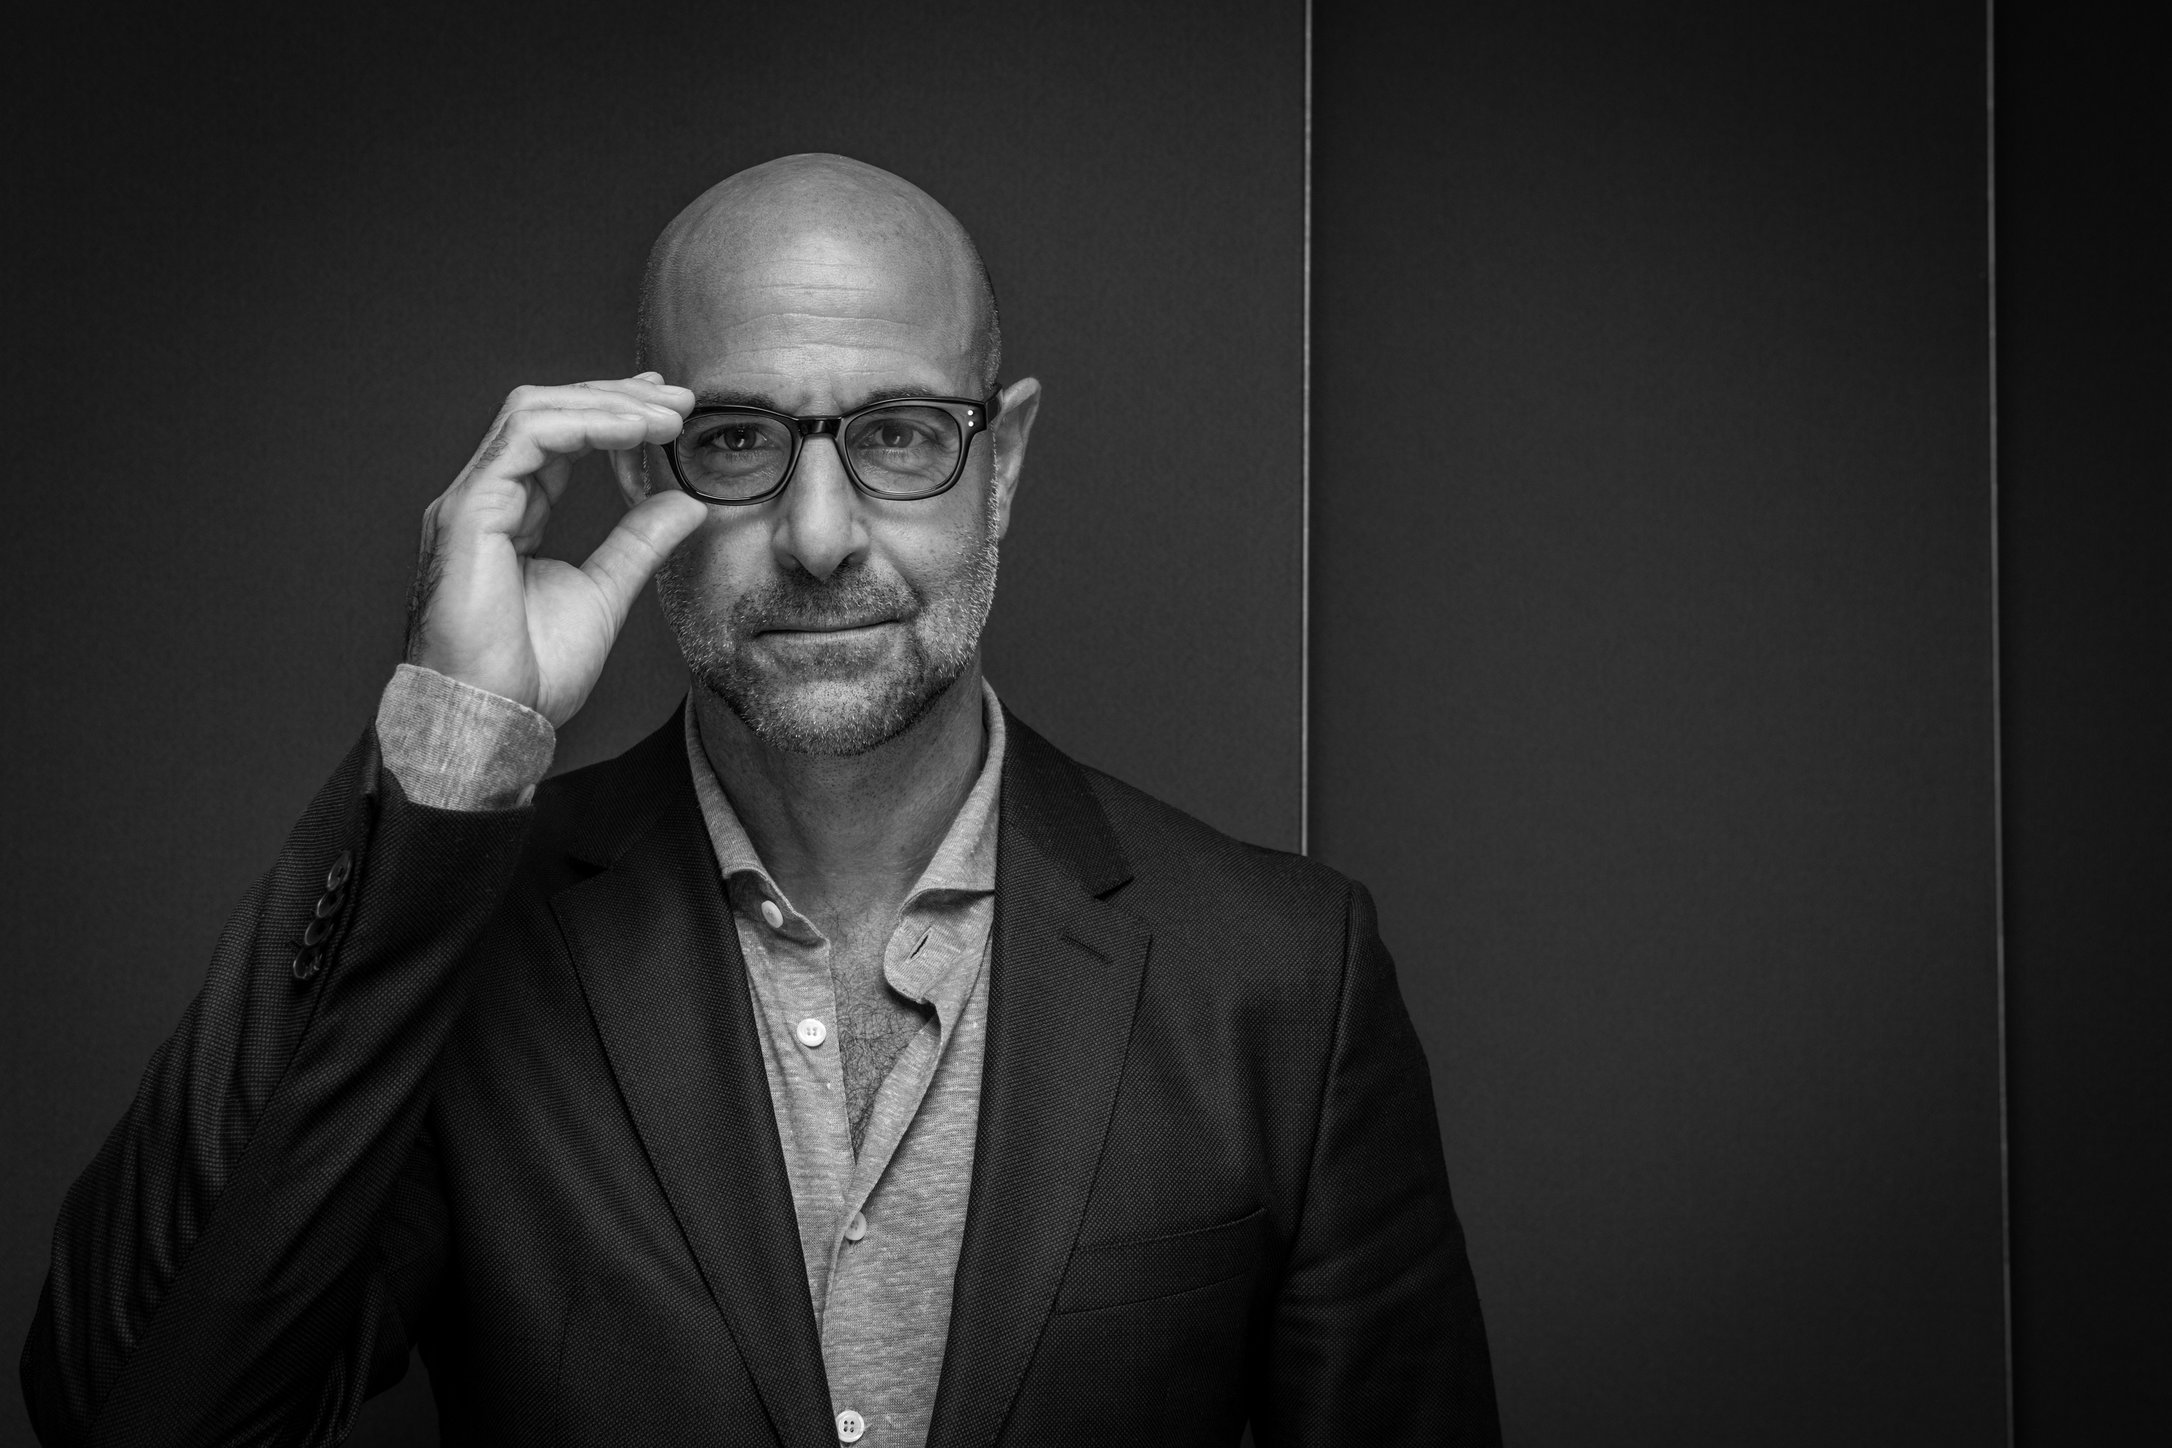 stanley tucci, actor